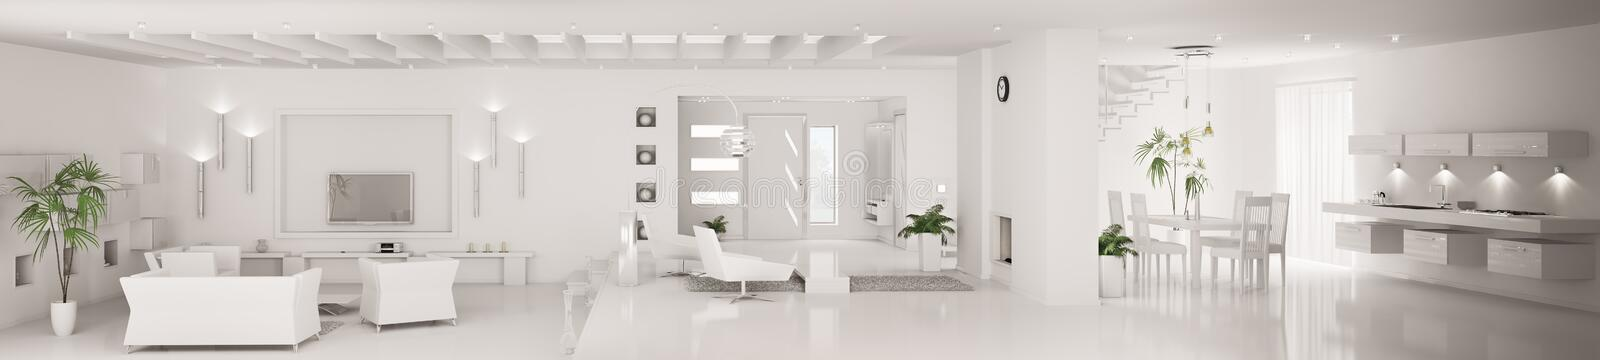 White modern interior panorama 3d render royalty free illustration